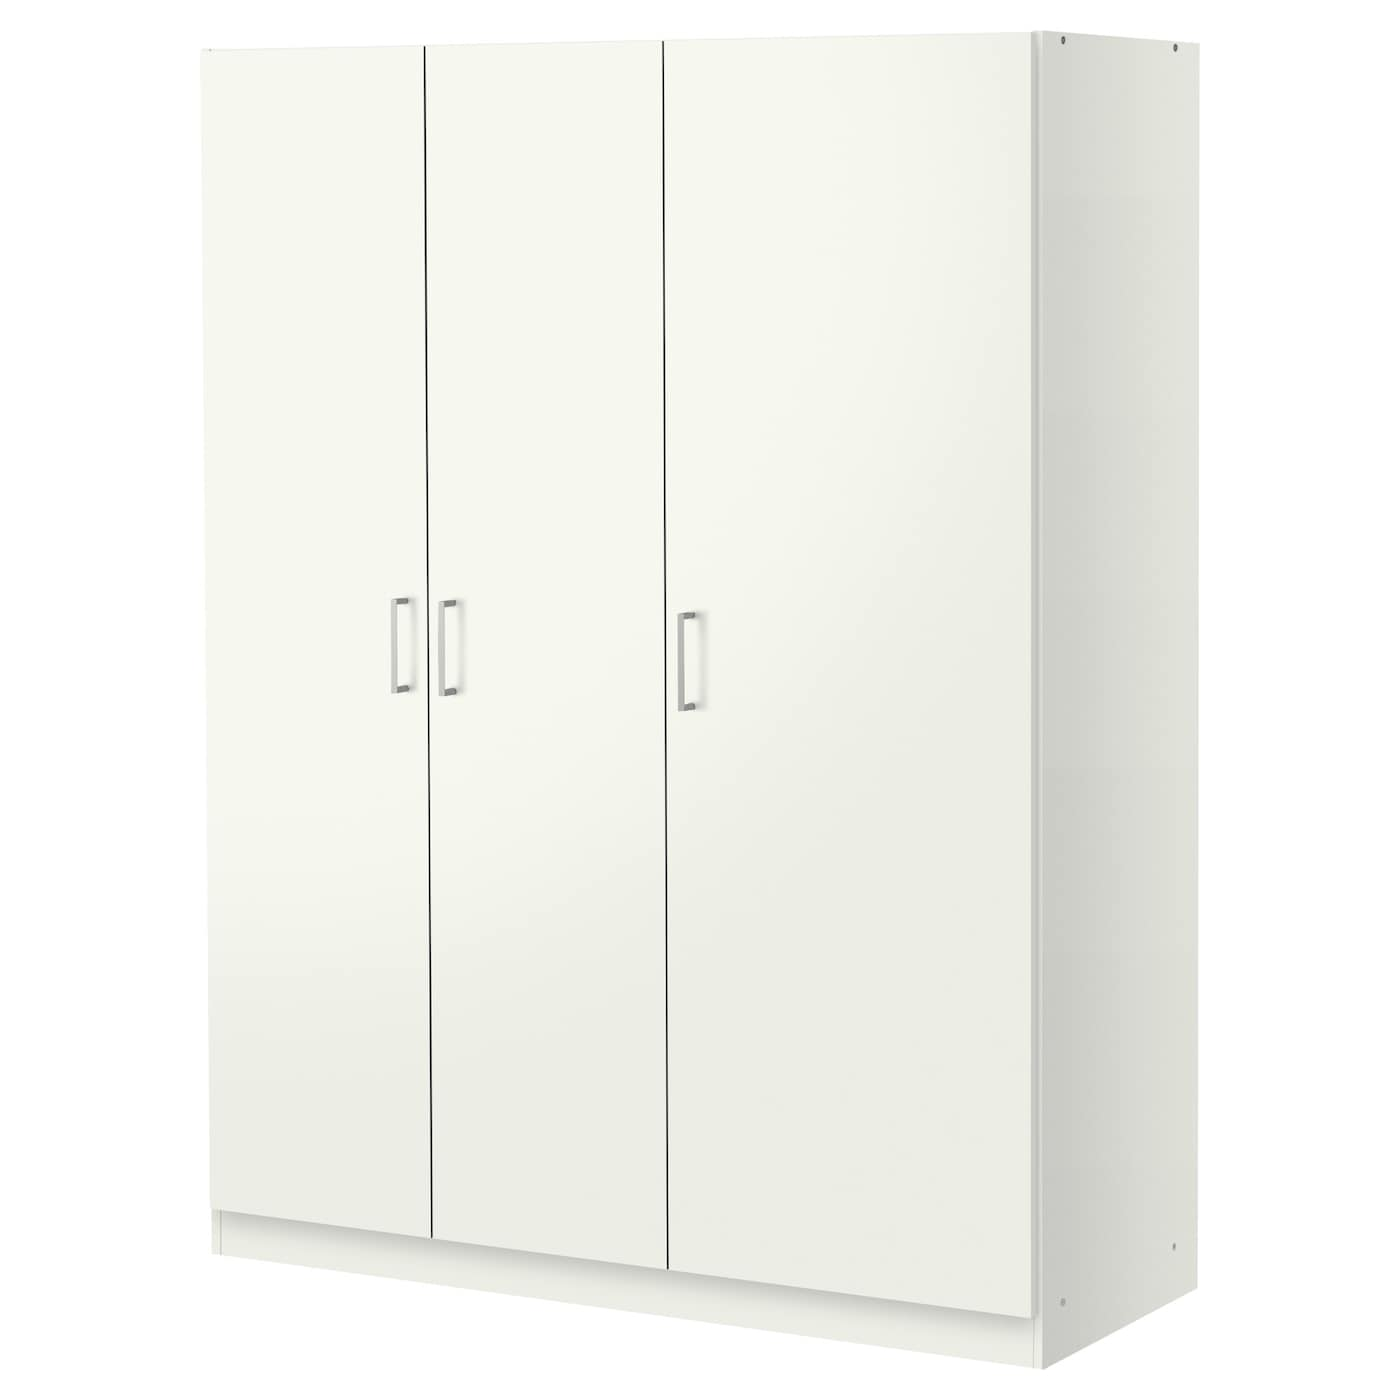 Dombas Ikea Wardrobe Review ~ Dombas Wardrobe Related Keywords & Suggestions  Dombas Wardrobe Long